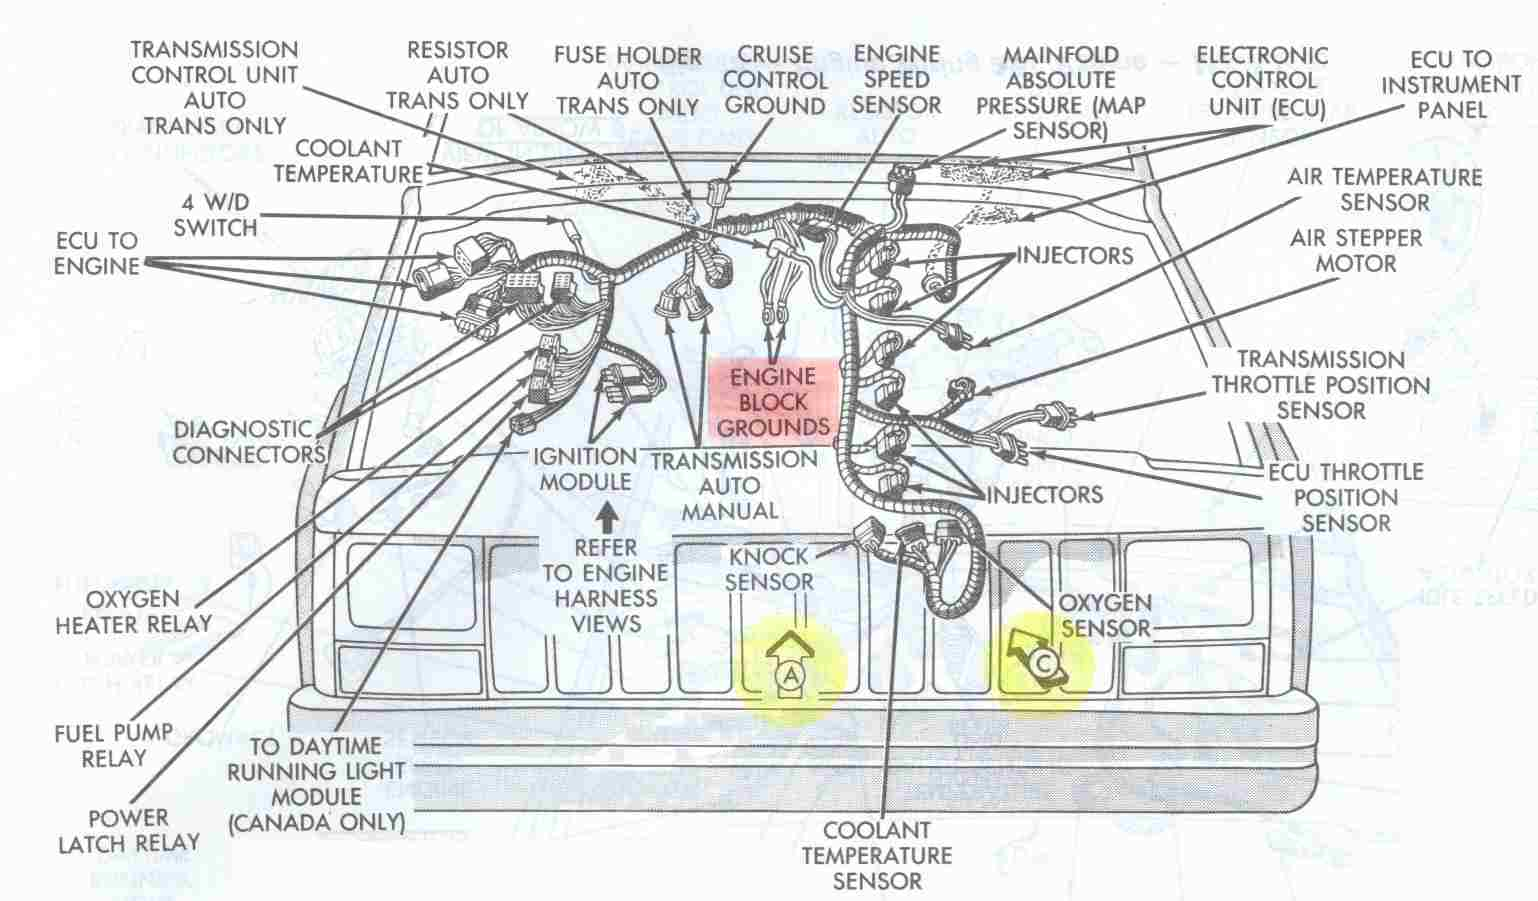 Electrical_Engine_Ground_Points_Overview jeep cherokee electrical diagnosing erratic behavior of engine 2007 Jeep Wrangler Wiring Diagram at cita.asia